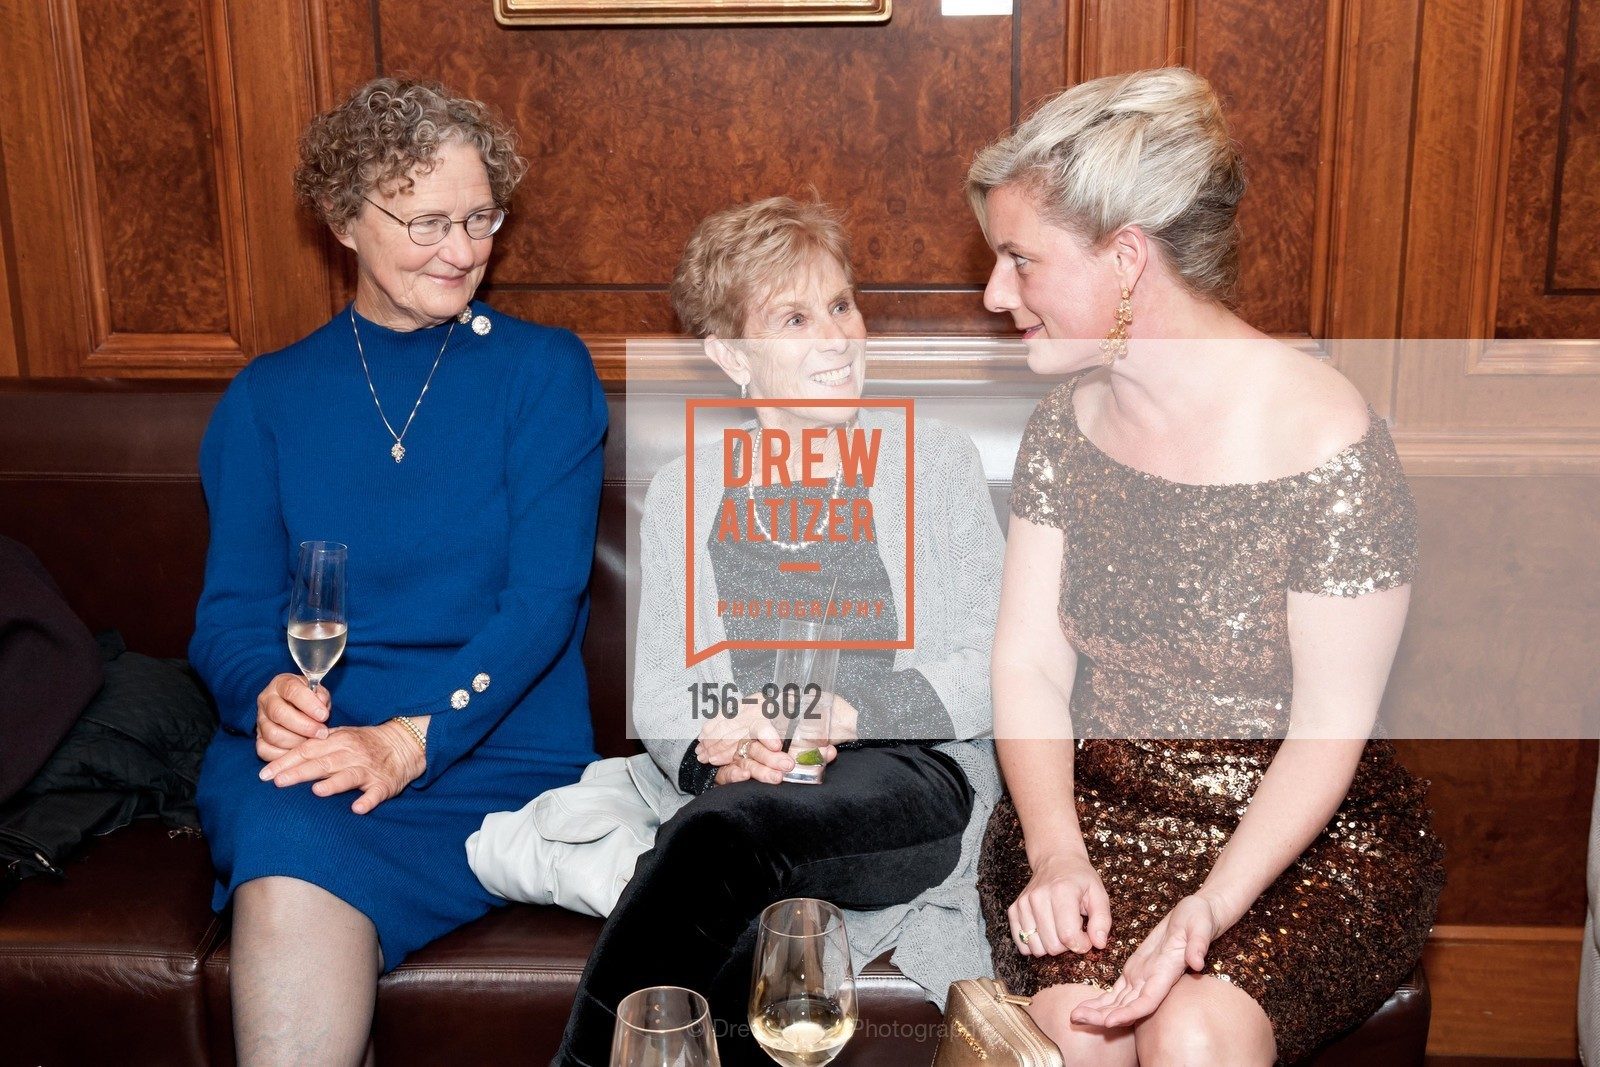 Diane Hnds, Mary Ann Garvey, Michelle Alberda, MR PORTER Celebrate The San Francisco Issue of The Journal, US, April 23rd, 2015,Drew Altizer, Drew Altizer Photography, full-service agency, private events, San Francisco photographer, photographer california